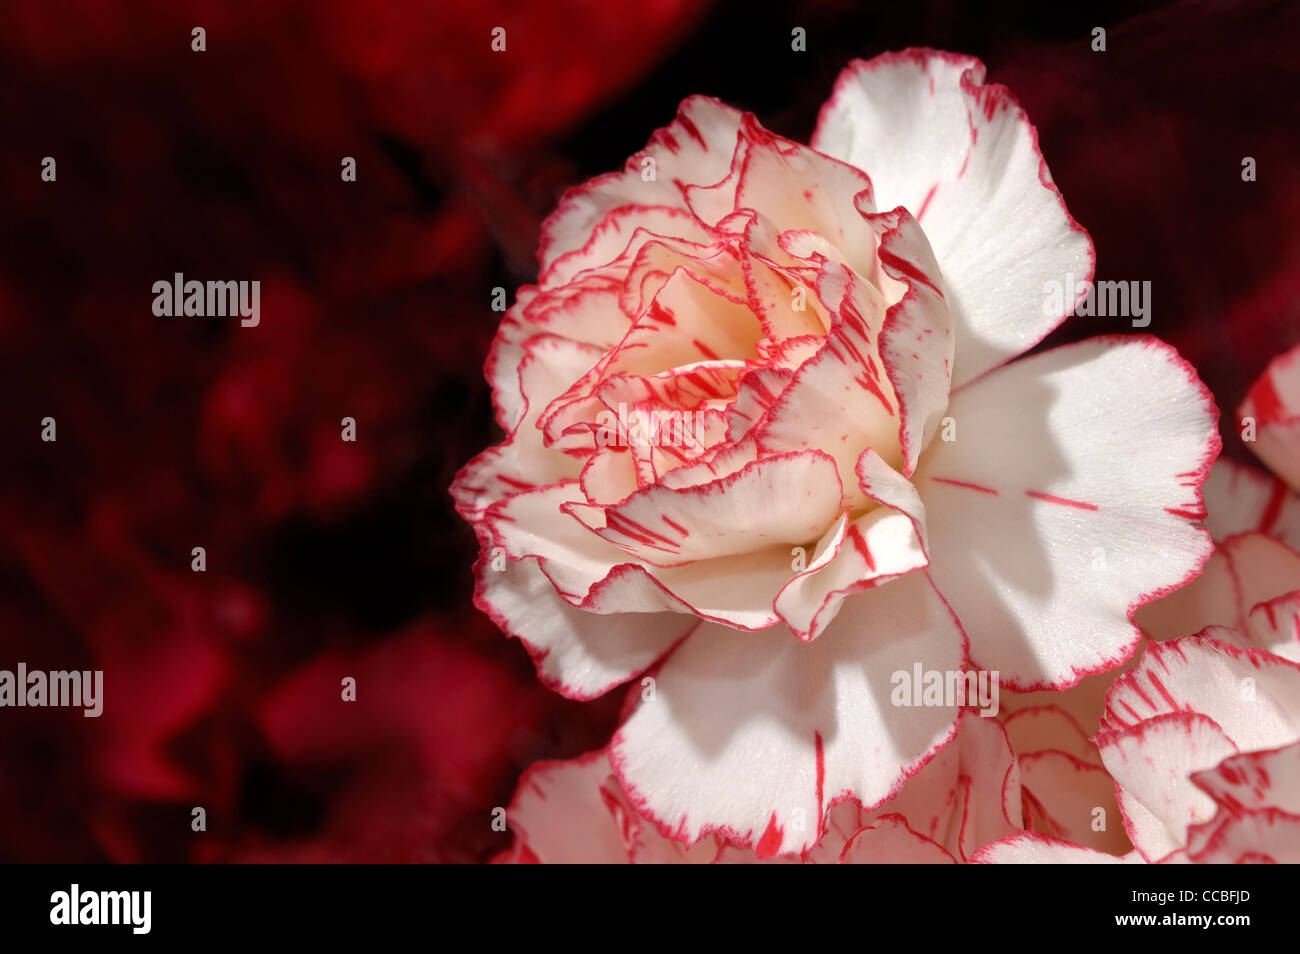 Red White Dianthus Flowers Stock Photos & Red White Dianthus Flowers ...